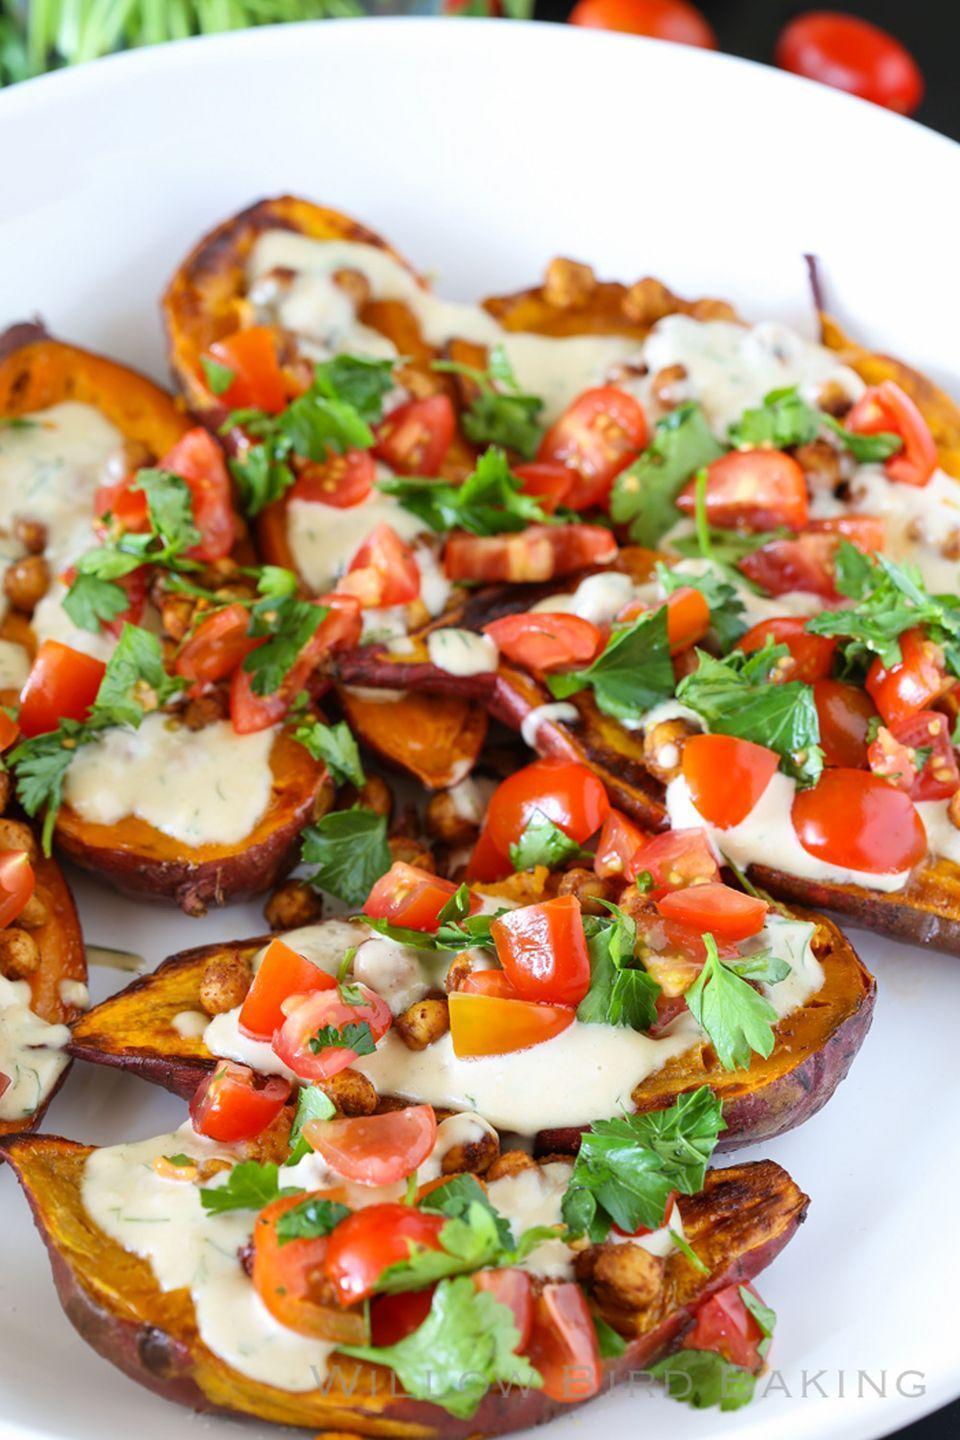 """<p>A homemade dill tahini sauce makes every bite of this dish burst with fresh flavors.</p><p><strong>Get the recipe at <a href=""""http://willowbirdbaking.com/2015/04/13/mediterranean-baked-sweet-potatoes/"""" rel=""""nofollow noopener"""" target=""""_blank"""" data-ylk=""""slk:Willow Bird Baking"""" class=""""link rapid-noclick-resp"""">Willow Bird Baking</a>.</strong></p><p><strong><strong><strong><a class=""""link rapid-noclick-resp"""" href=""""https://www.amazon.com/Nordic-Ware-Natural-Aluminum-Commercial/dp/B0049C2S32/?tag=syn-yahoo-20&ascsubtag=%5Bartid%7C10050.g.877%5Bsrc%7Cyahoo-us"""" rel=""""nofollow noopener"""" target=""""_blank"""" data-ylk=""""slk:SHOP BAKING SHEETS"""">SHOP BAKING SHEETS</a></strong></strong><br></strong></p>"""